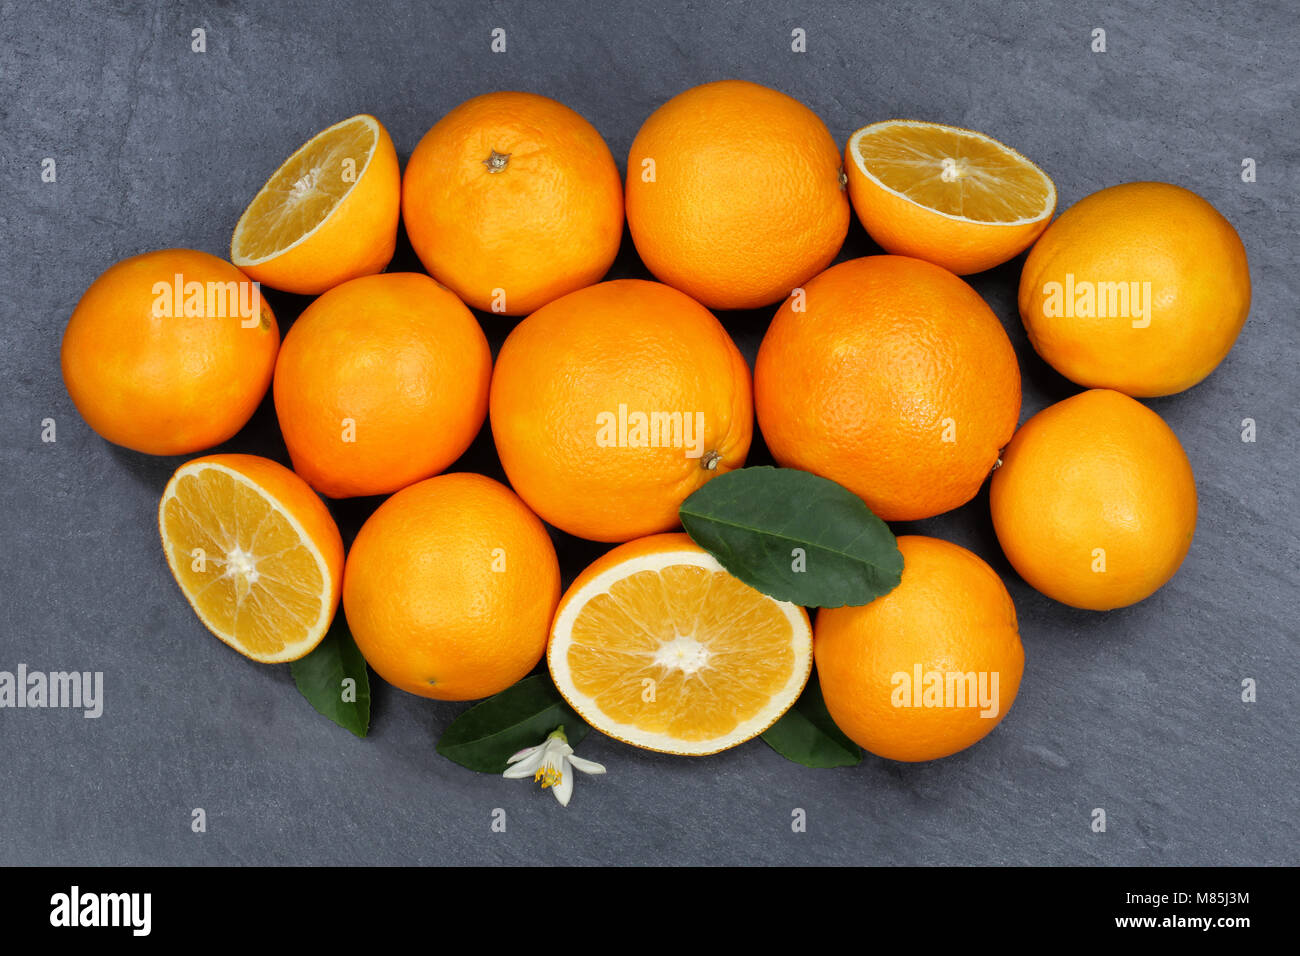 Oranges orange fruits slate top view from above - Stock Image